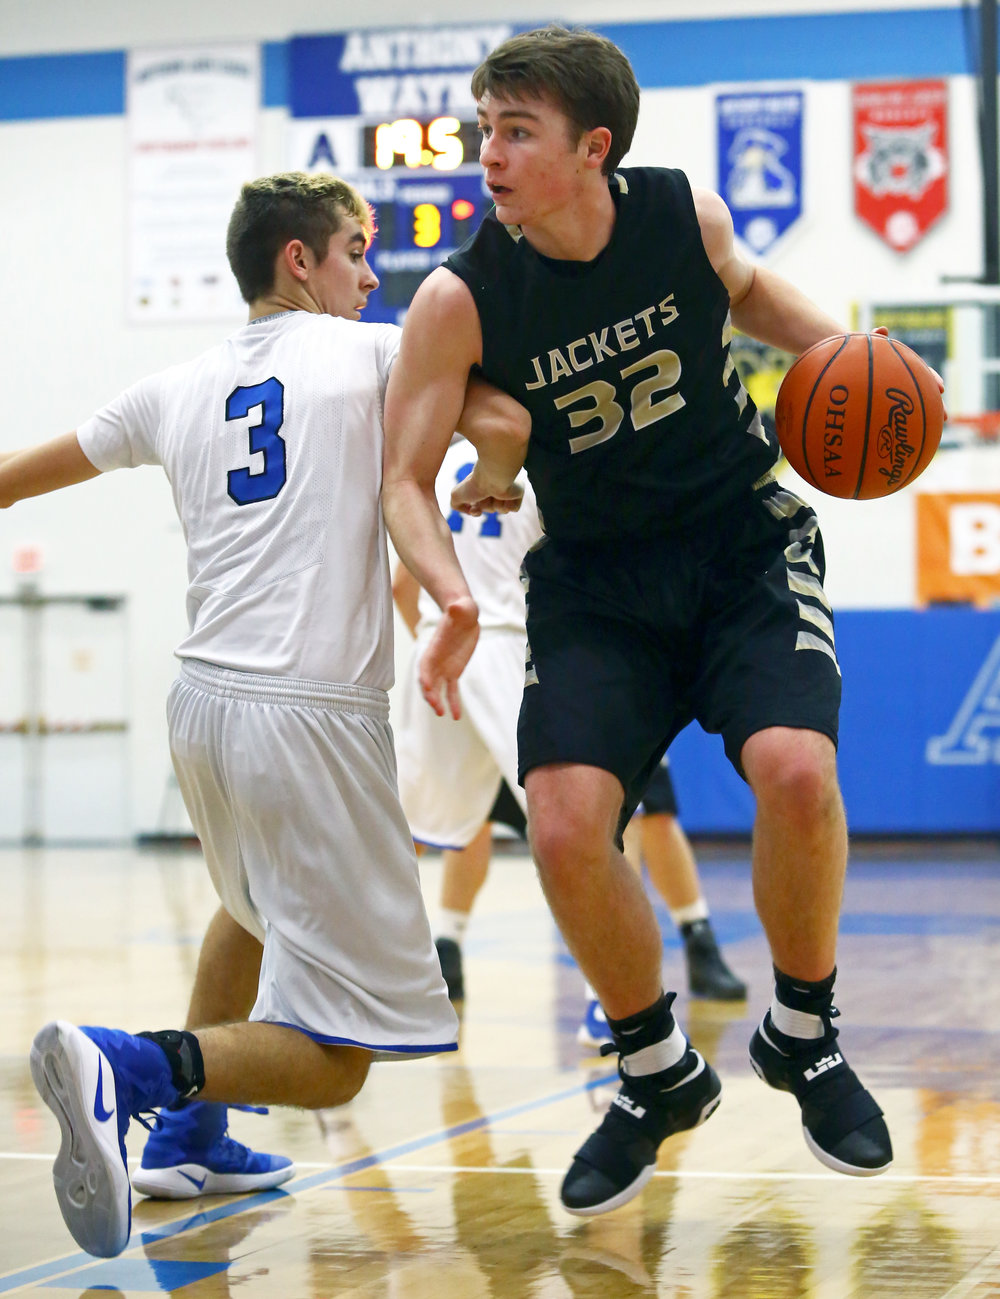 Anthony Wayne High School guard Connor Trost (3) throws an elbow into the side of Perrysburg High School forward Zach Pohlman (32) as he makes his way to the net during the varsity boy's basketball game at Anthony Wayne High School in Whitehouse, Oh, Friday, Dec. 23, 2016. Perrysburg won the game 65-45.